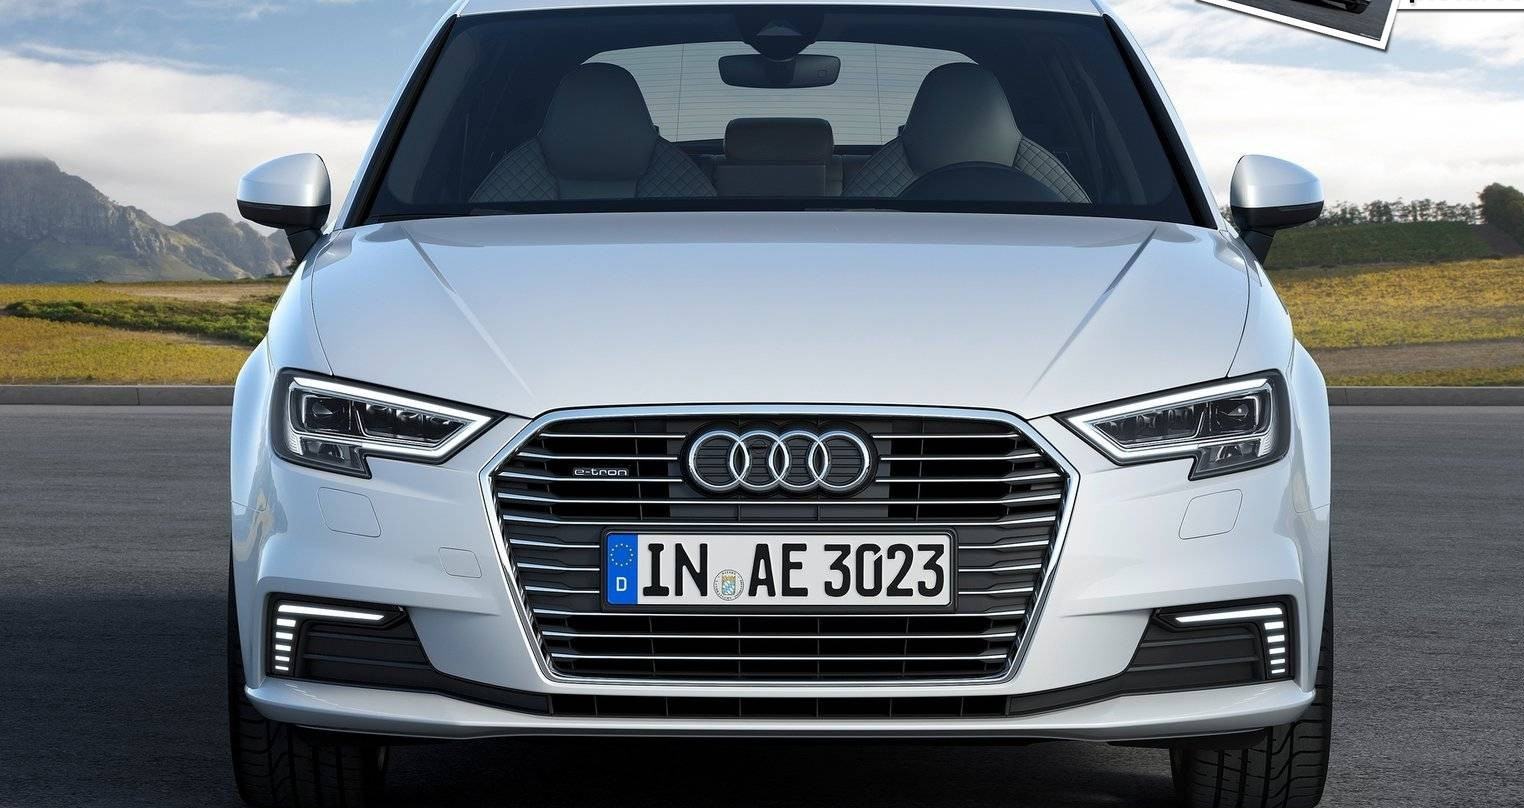 Audi A3 E Tron Sales Are Hitting The Target Claims Audi